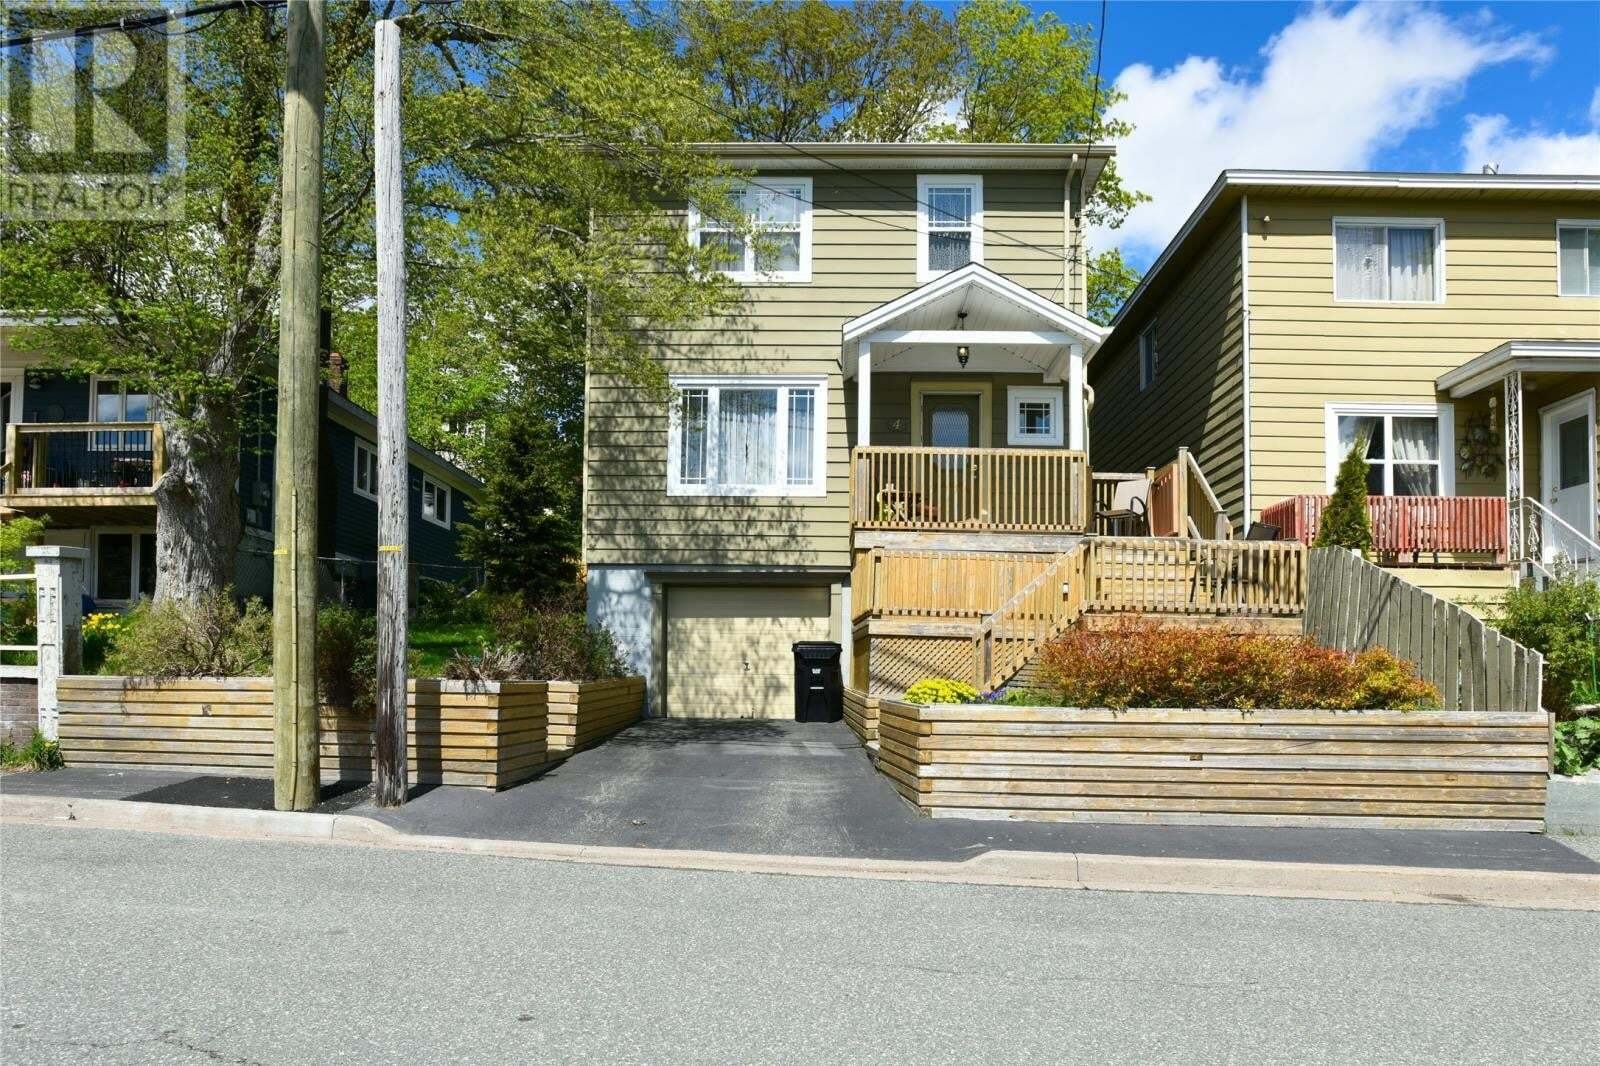 House for sale at 4 Warbury St St. Johns Newfoundland - MLS: 1214677